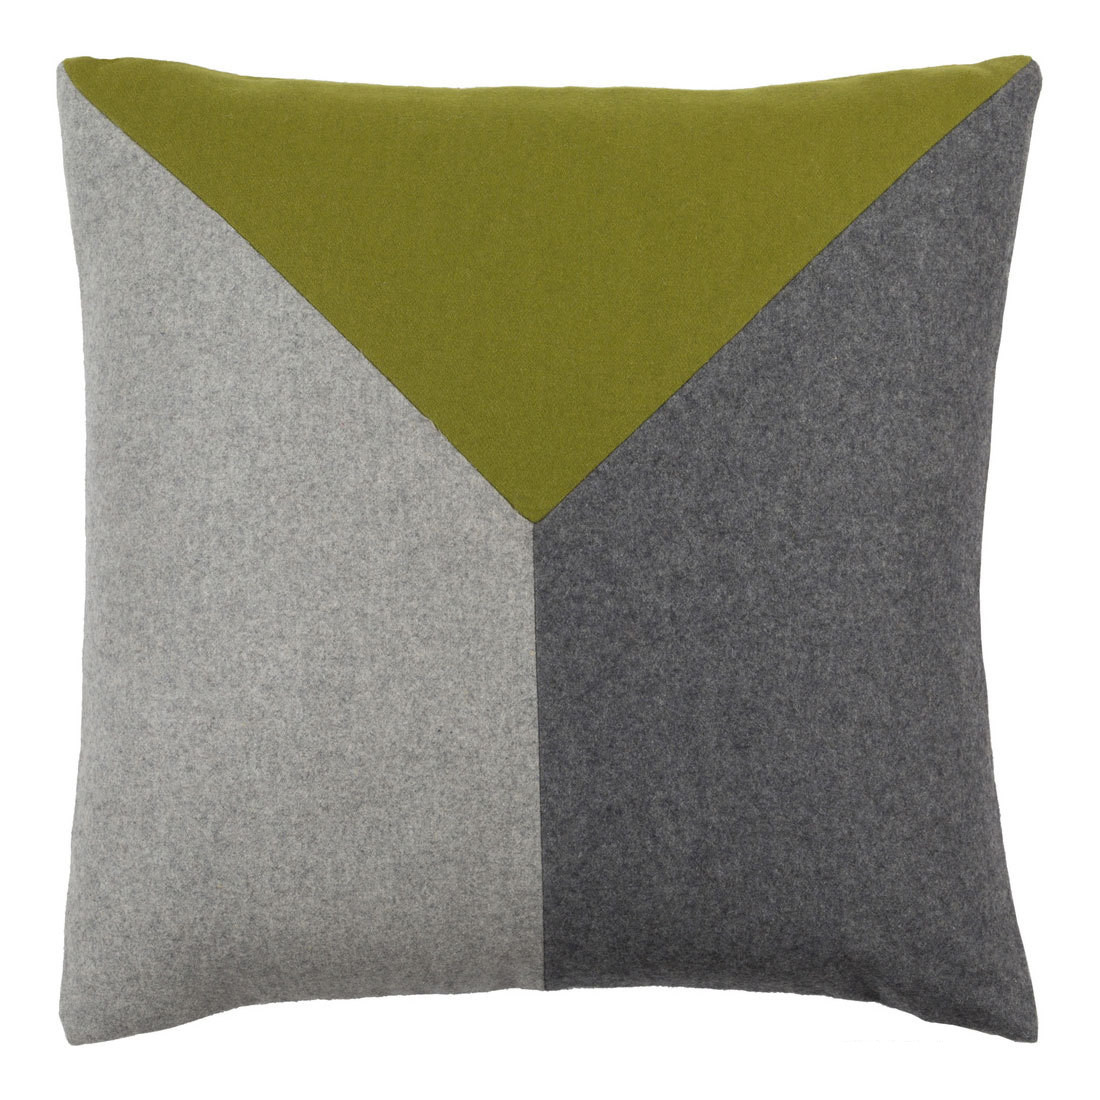 VM Felted Pillow - JH-001 18 x 18 inches Wool, Viscose Style A